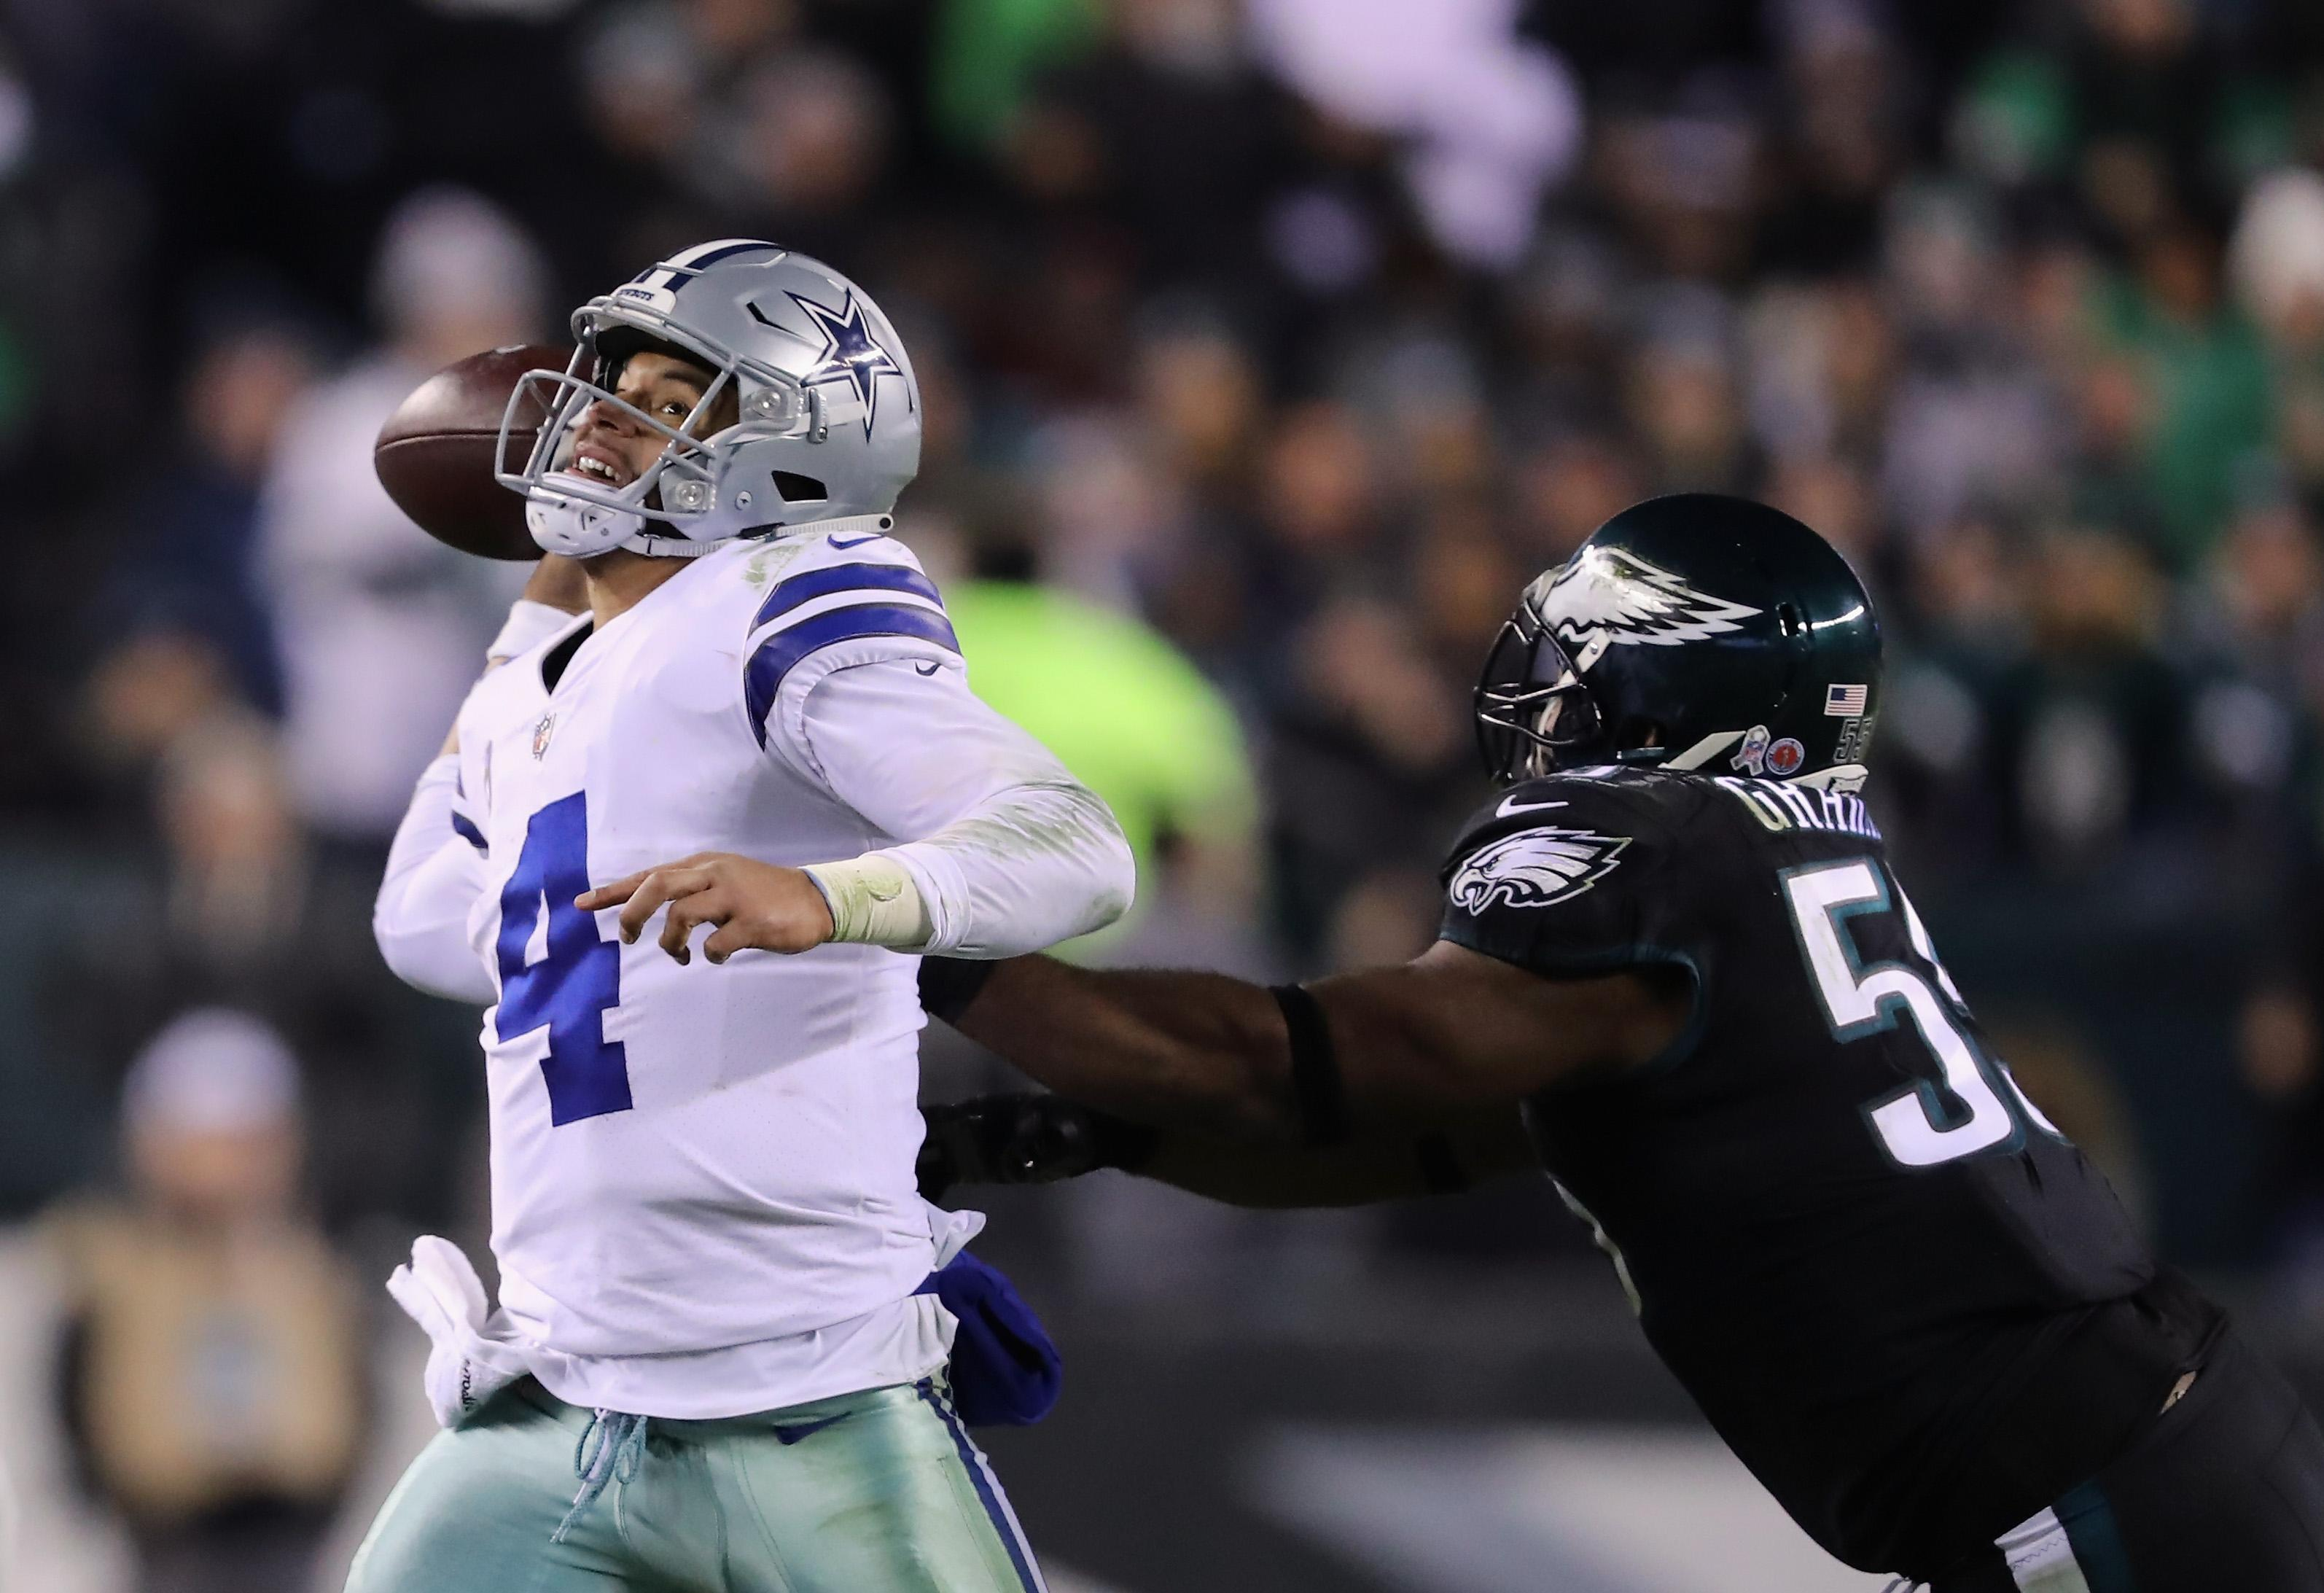 NFL Predictions 2019: Best Bets For Cowboys, Eagles, Giants